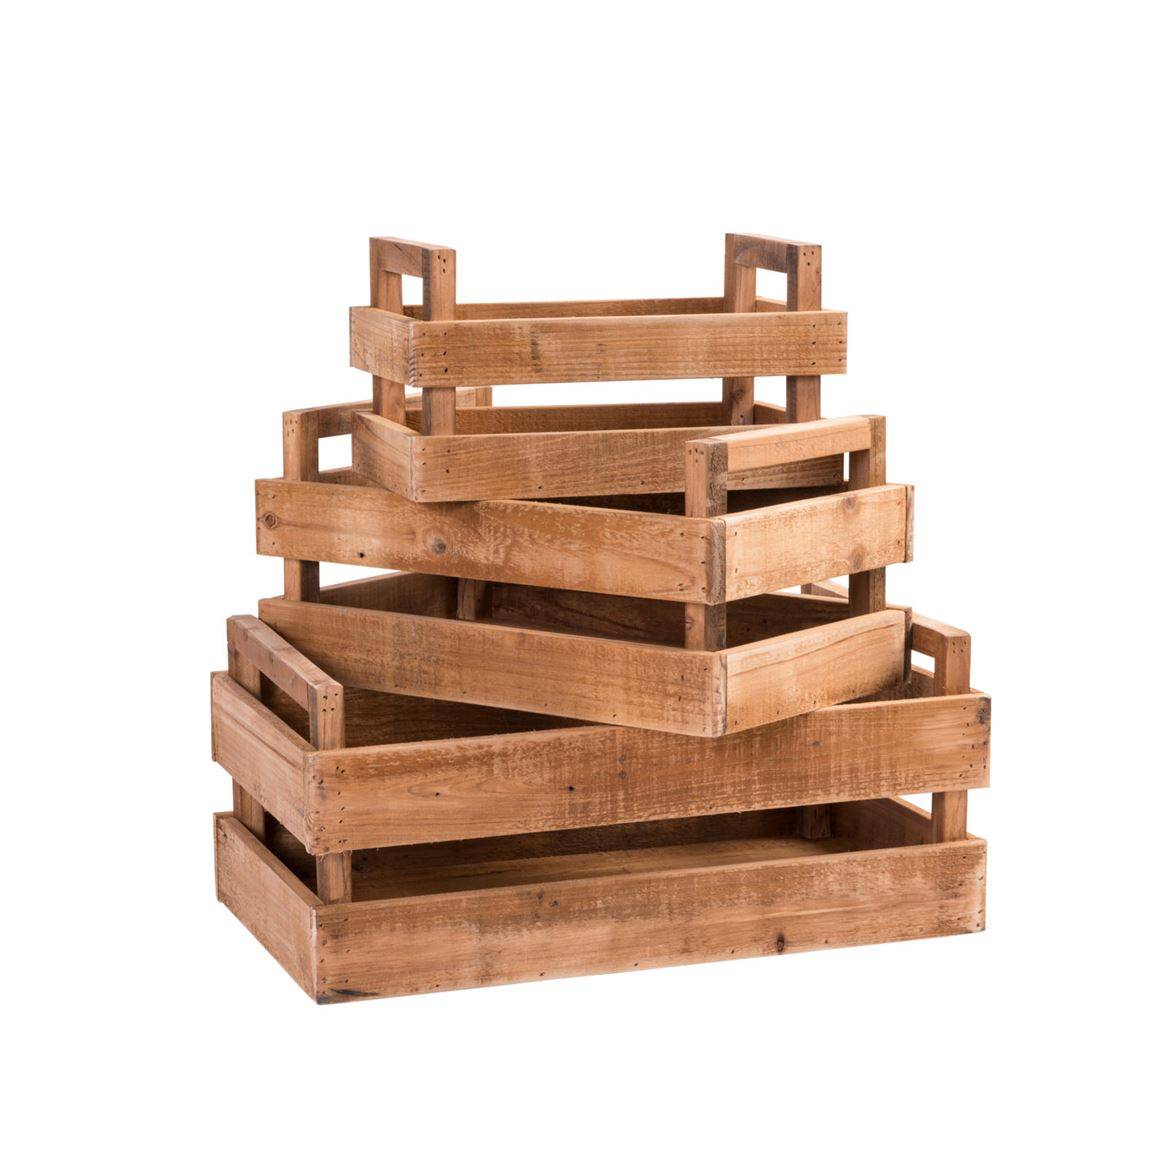 RECYCLE Cassetta naturale H 11 x W 29 x D 17 cm_recycle-cassetta-naturale-h-11-x-w-29-x-d-17-cm